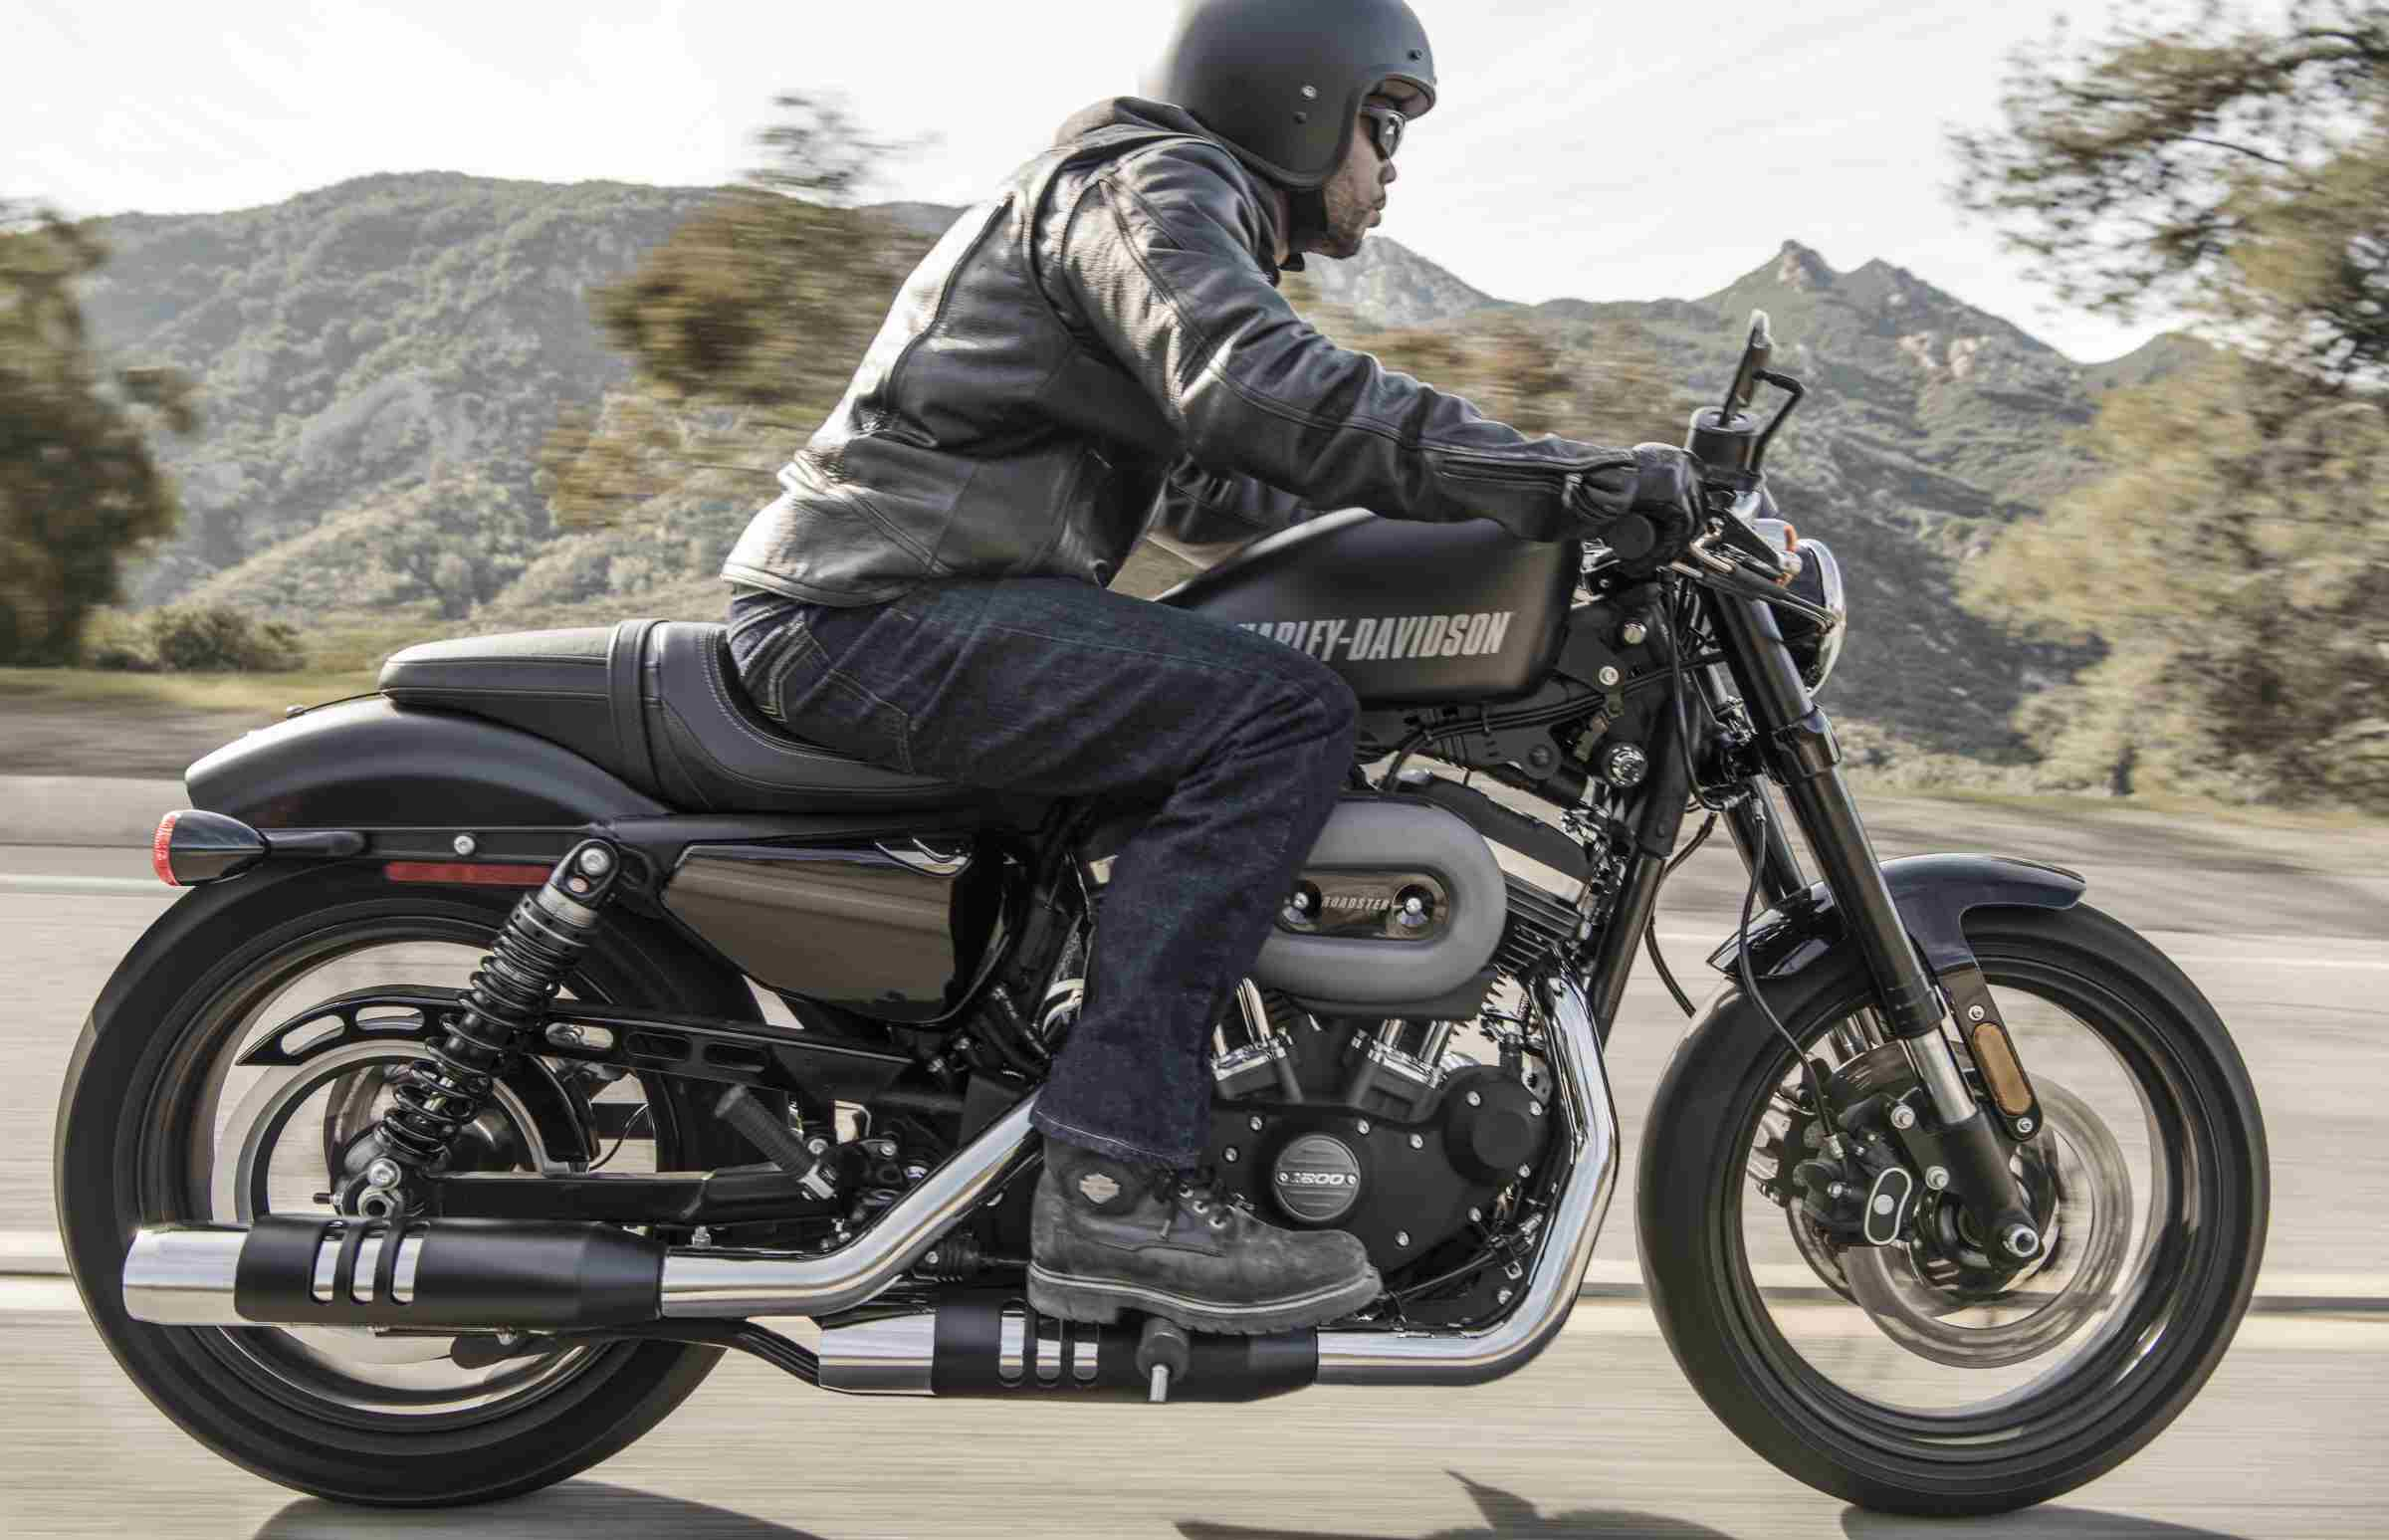 5 Reasons The New Harley Davidson Roadster Will Reinvent The Sportster